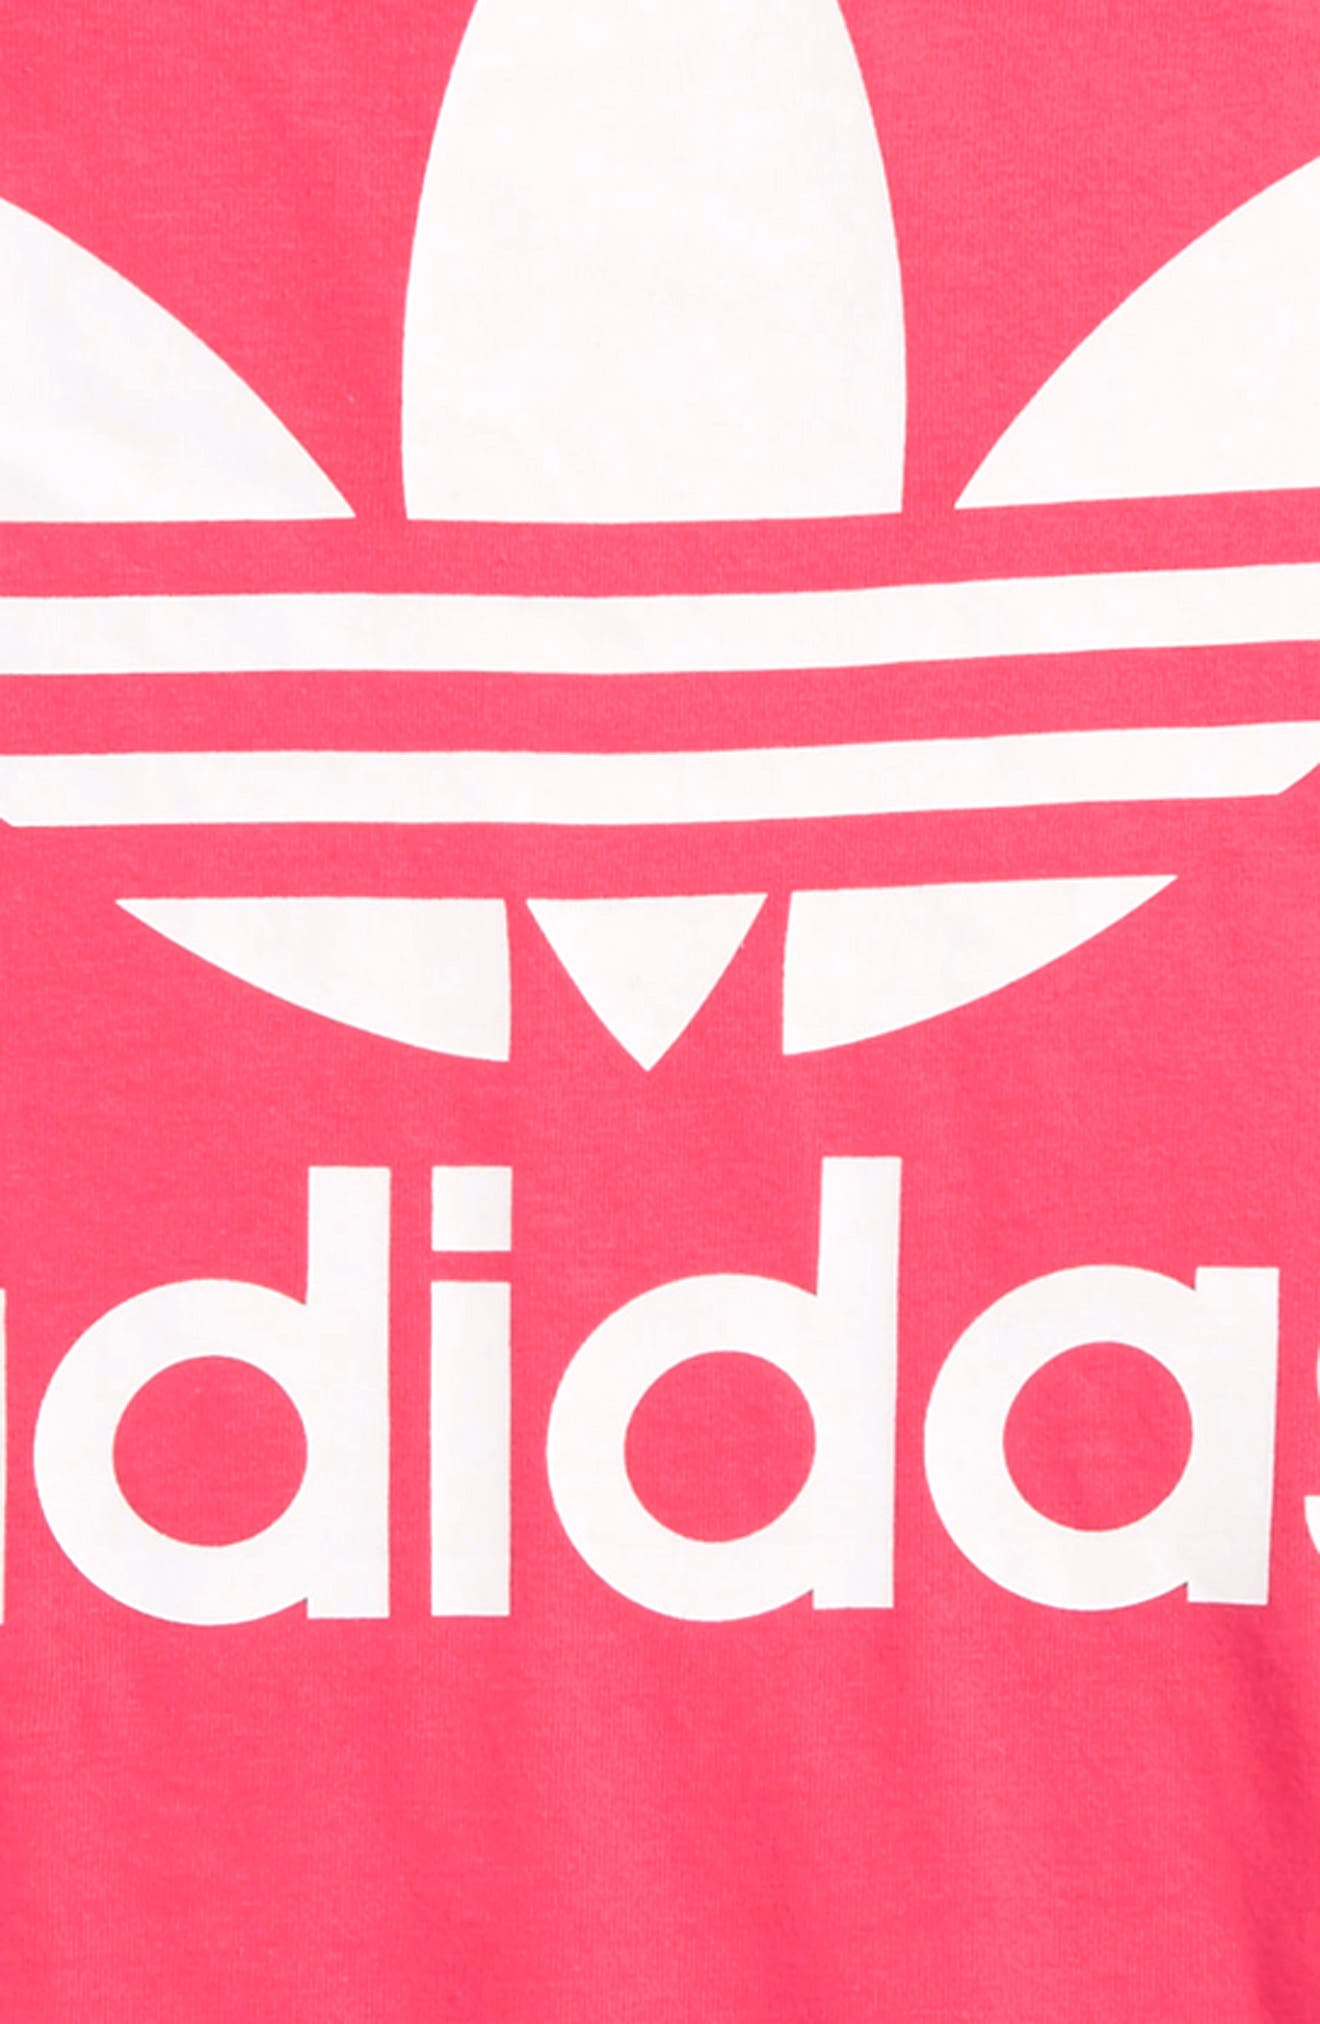 adidas Trefoil Tee,                             Alternate thumbnail 2, color,                             Real Pink / White